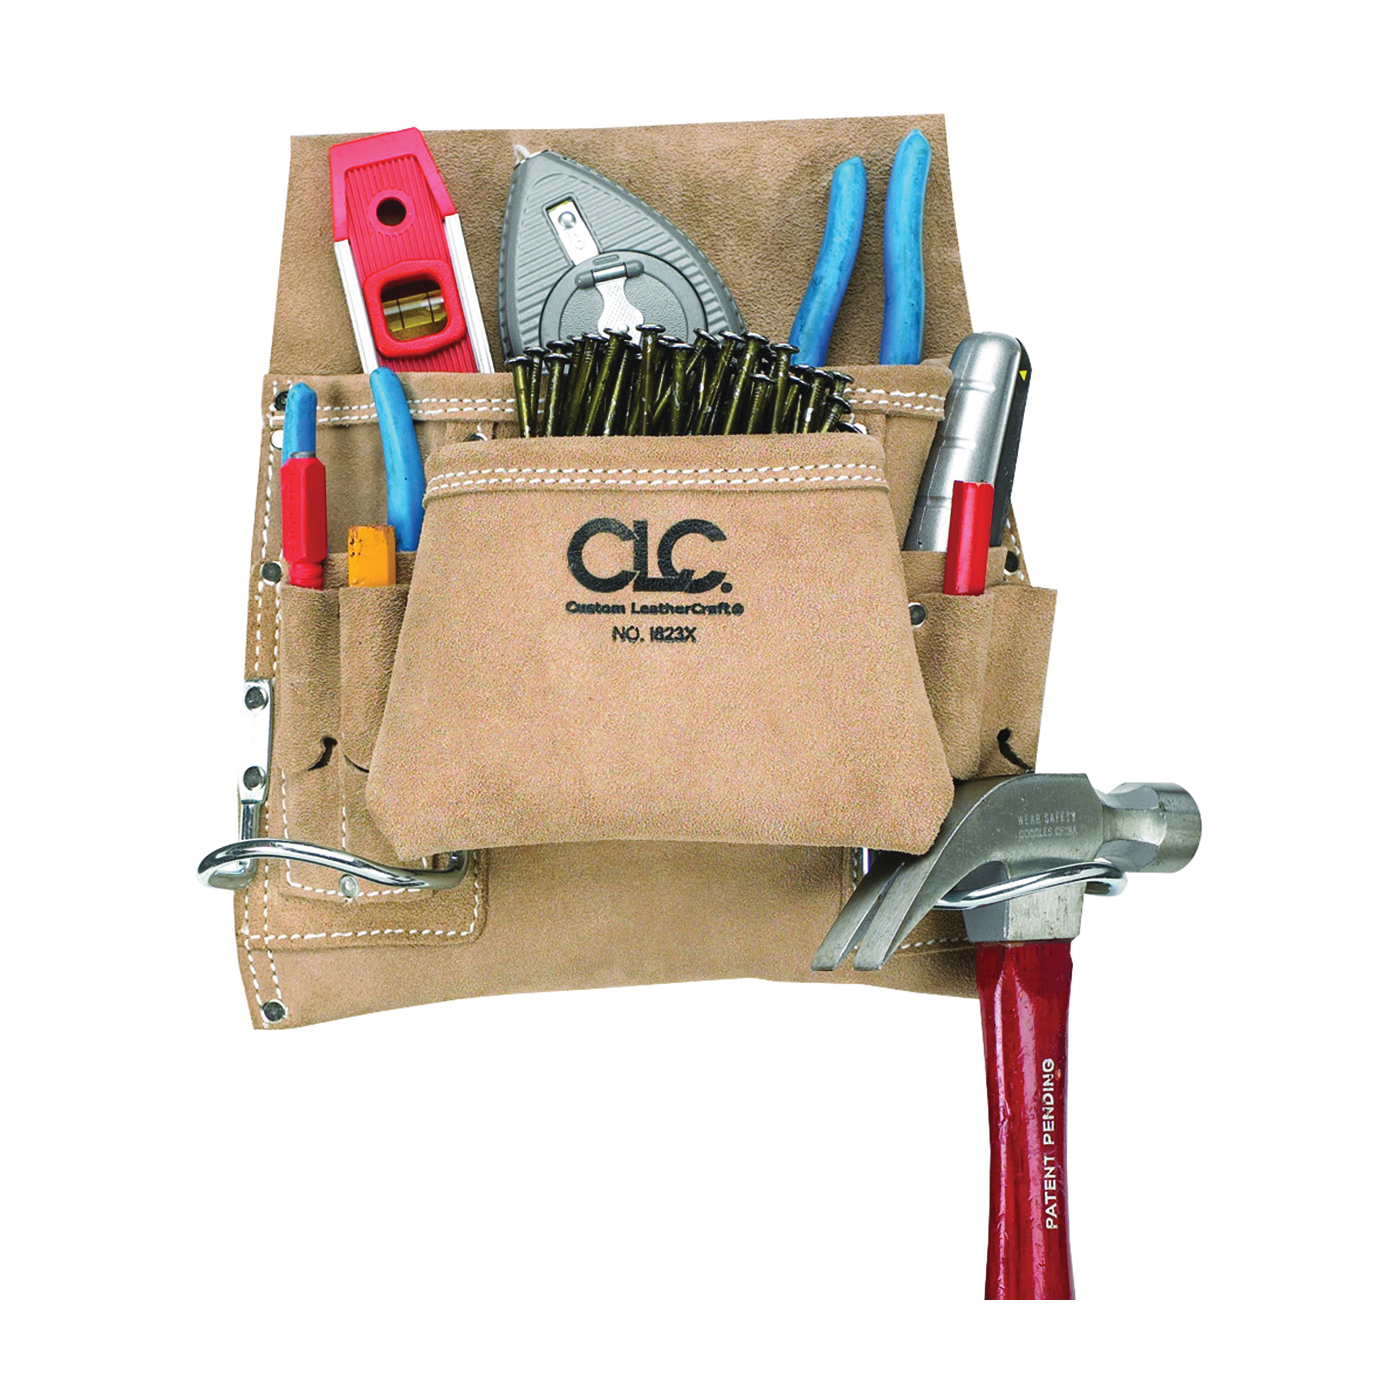 Picture of CLC Tool Works I823X Nail/Tool Bag, 20 in W, 12 in H, 8 -Pocket, Suede Leather, Tan